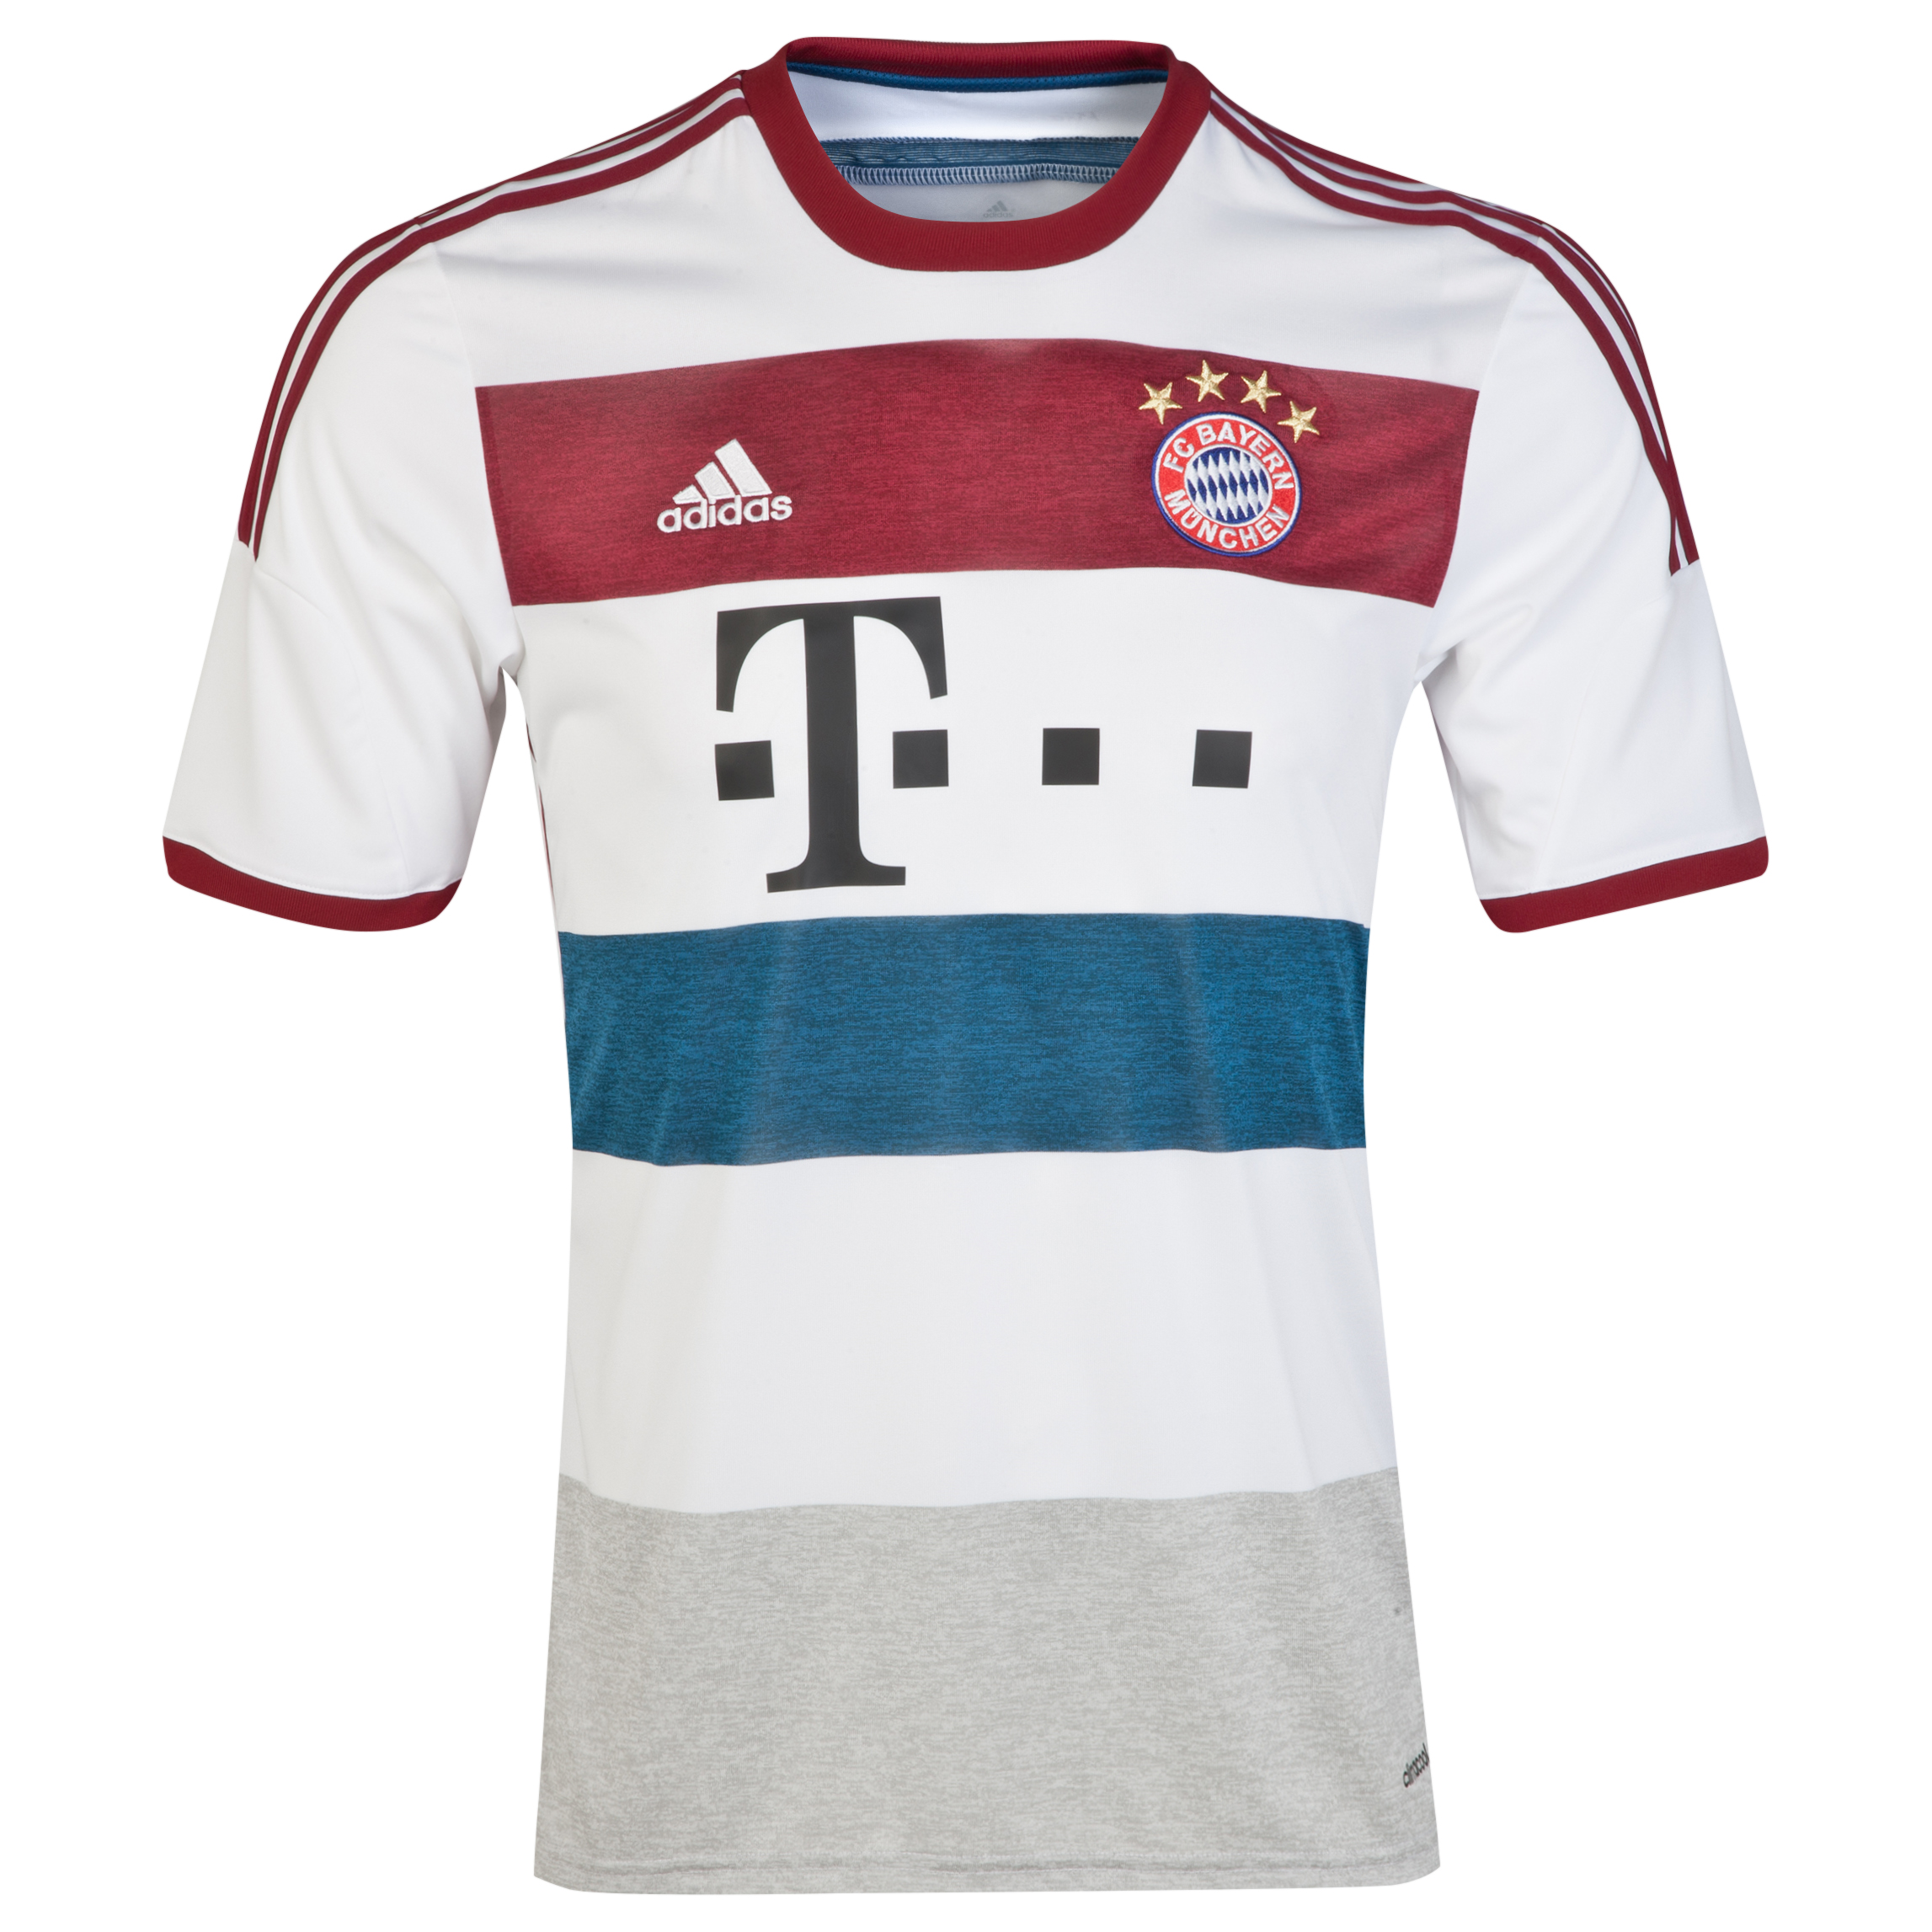 Bayern Munich Away Shirt 2014/15